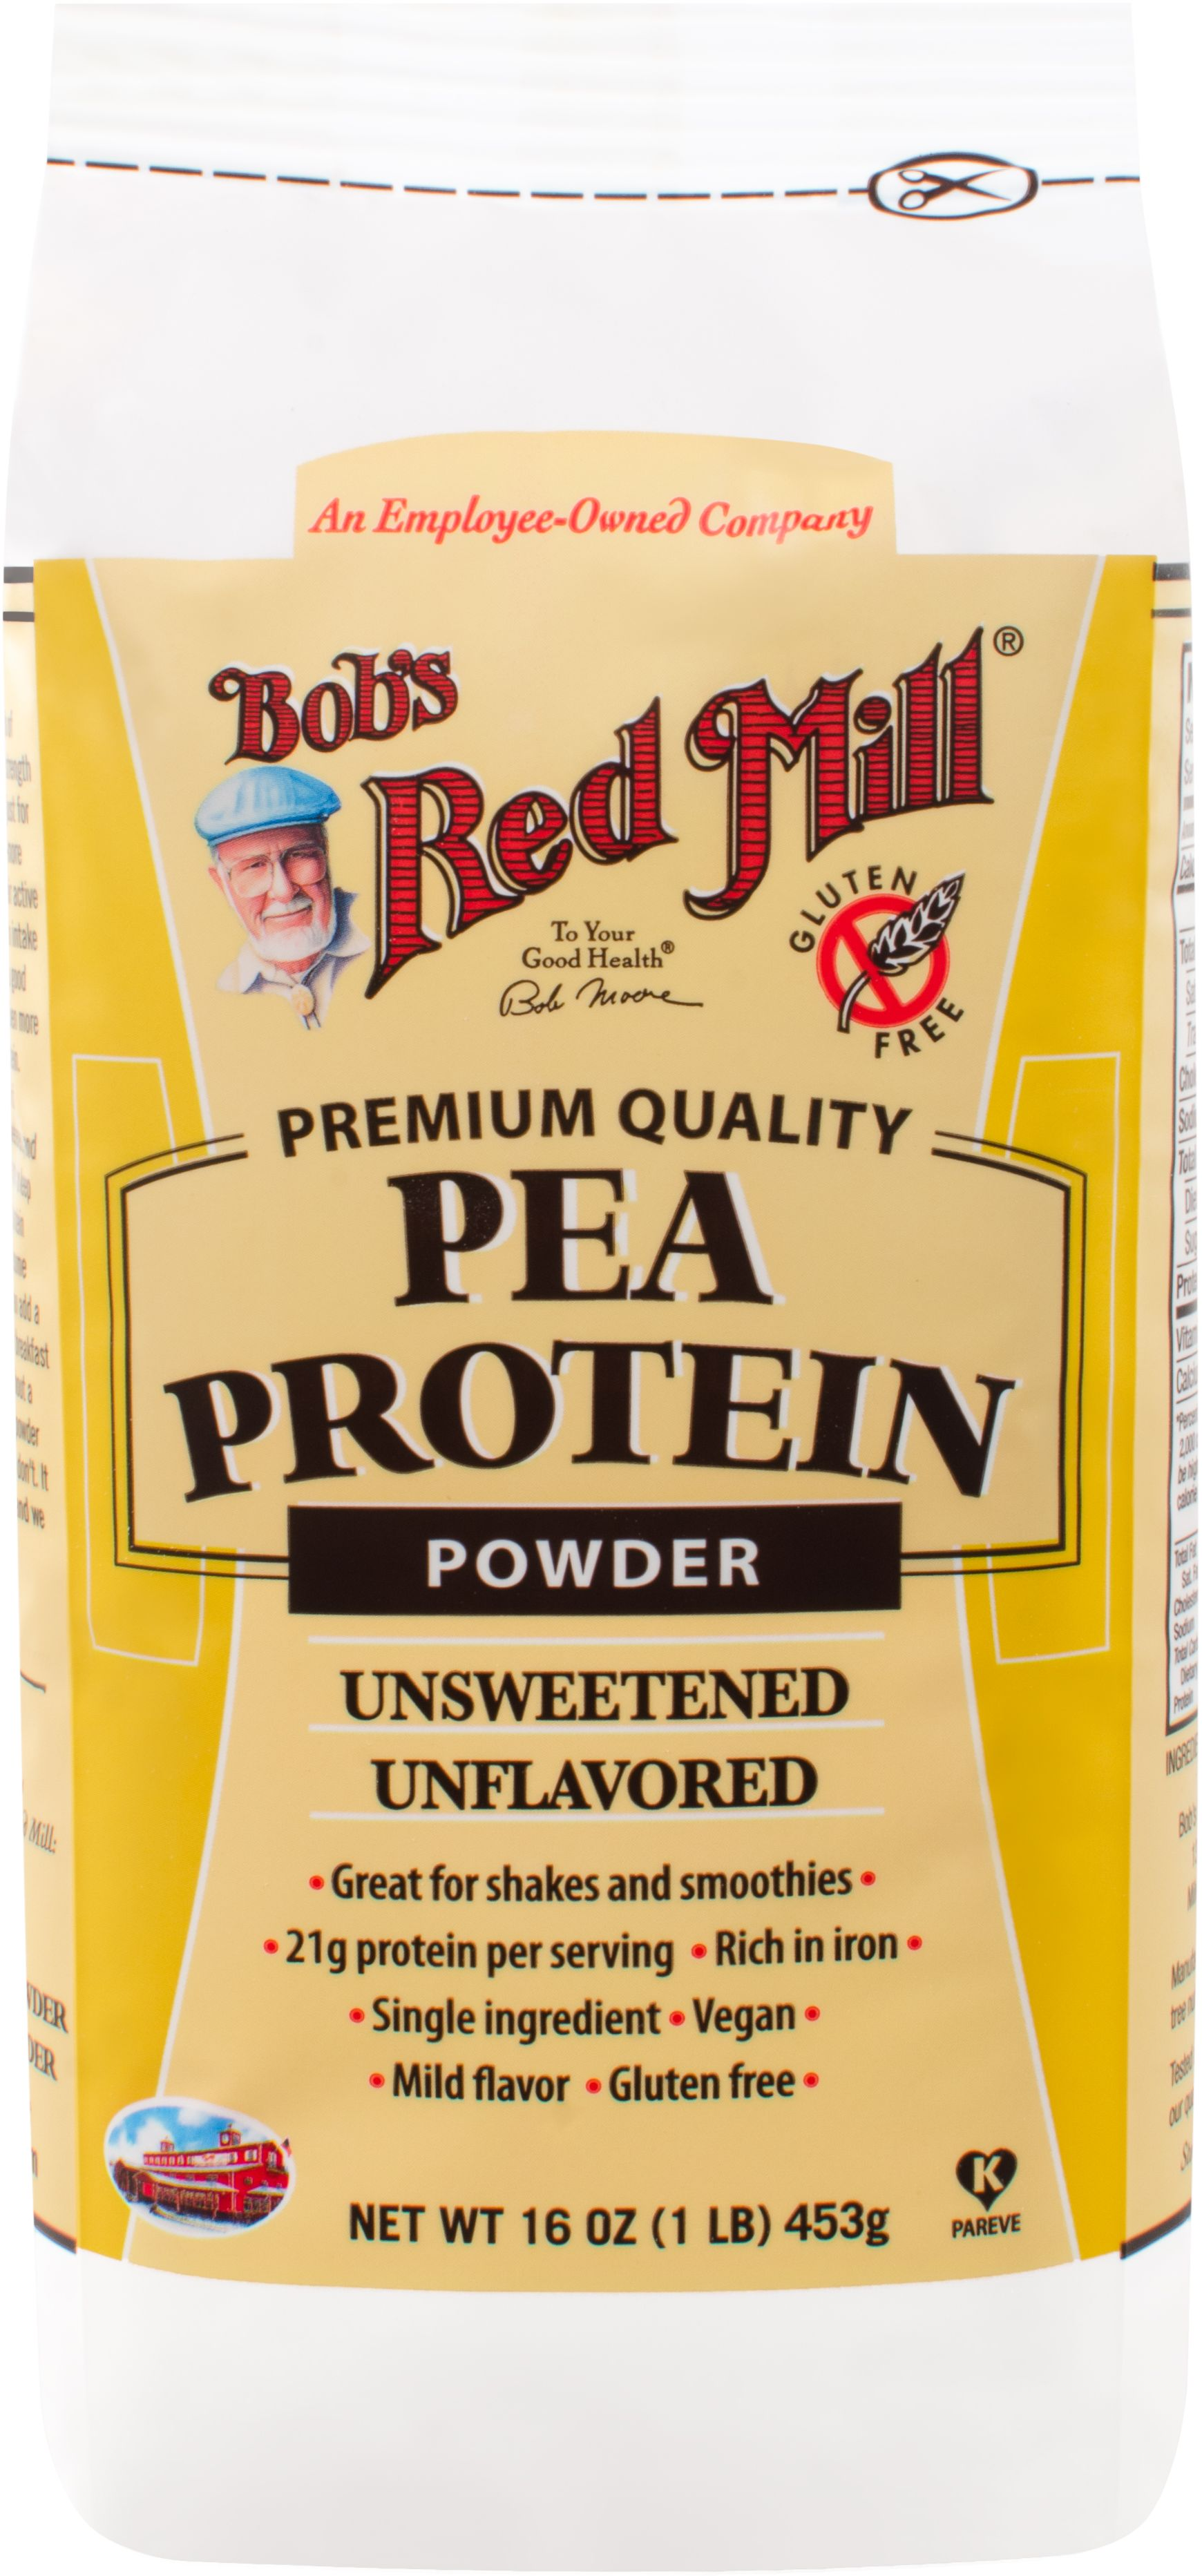 Bob's Red Mill Pea Protein Powder is made from raw yellow peas. The protein is isolated from the peas using a low-heat, water based process. Unlike many other pea protein powders, there are no chemical solvents used to make Bob's Red Mill Pea Protein Powder. Add pea protein powder to smoothies for a plant-based protein boost.